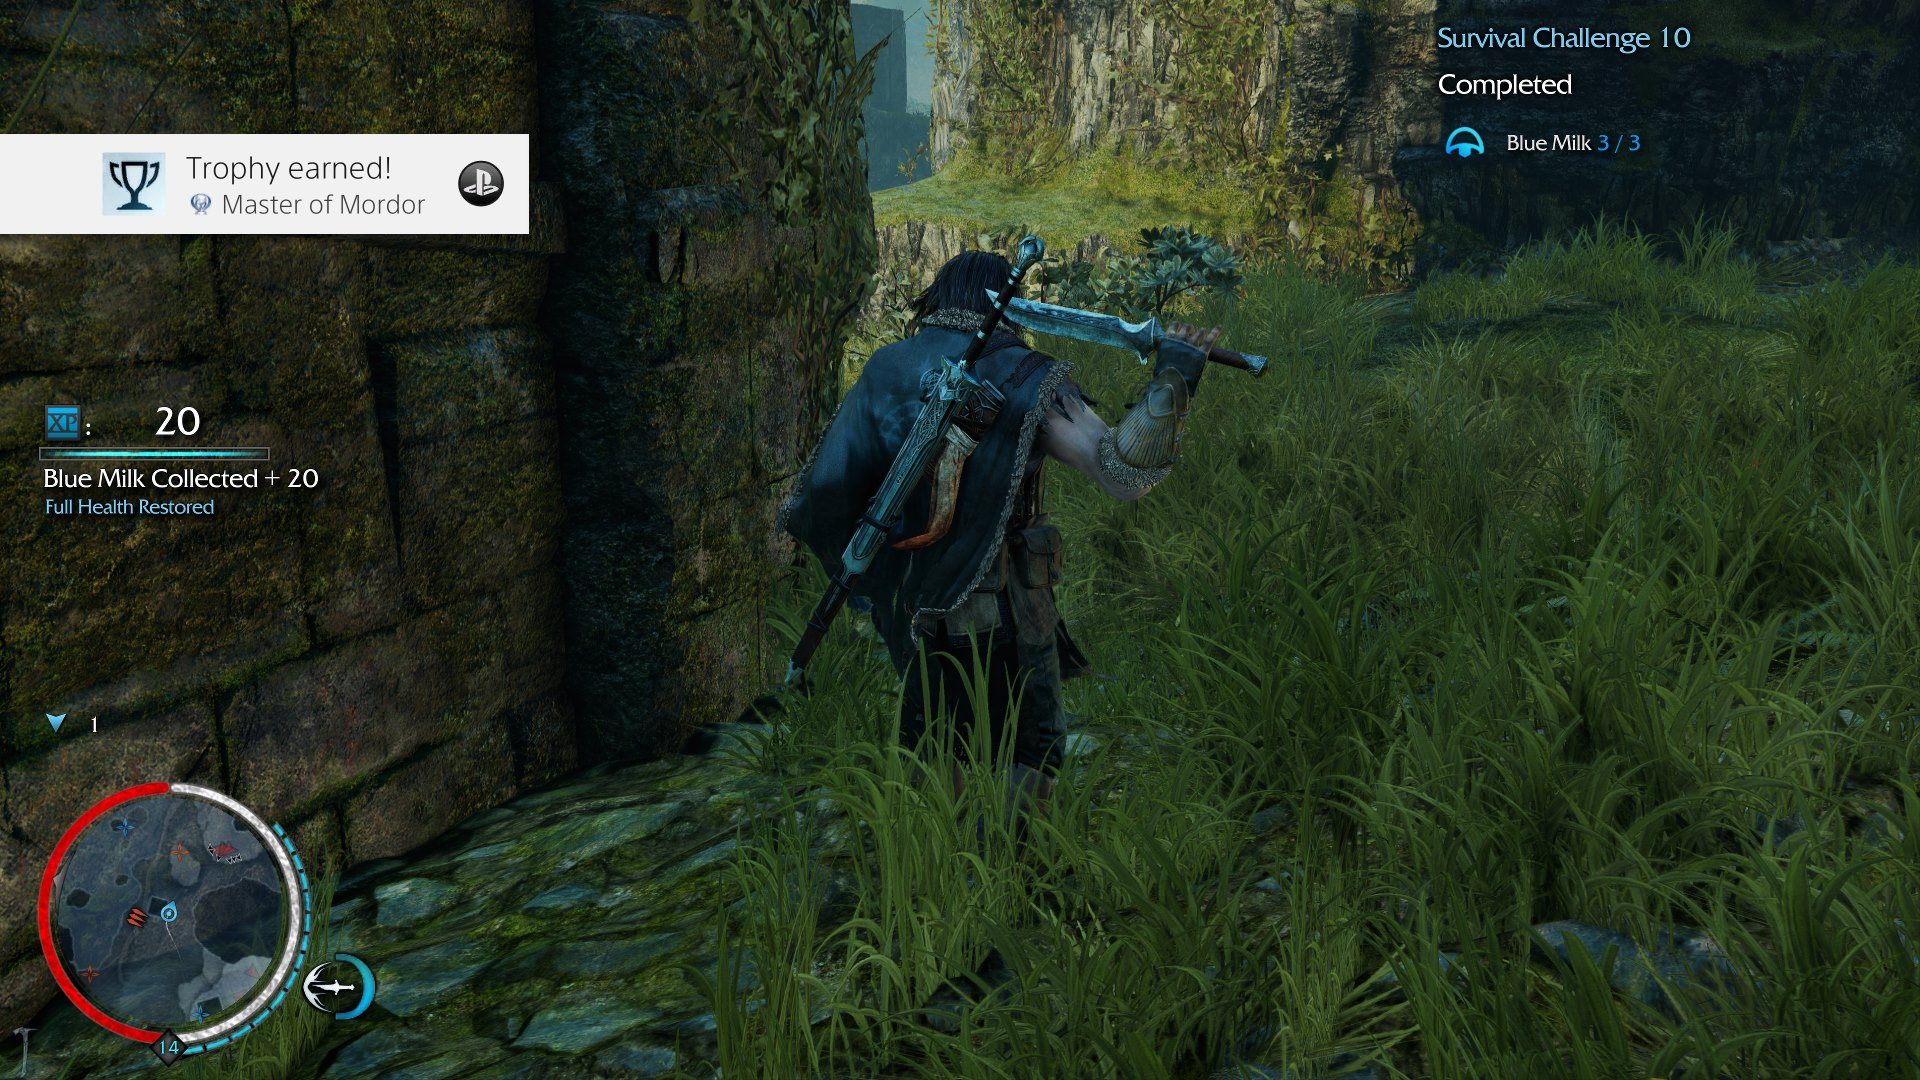 Thoughts on trophy hunting in Shadow of Mordor